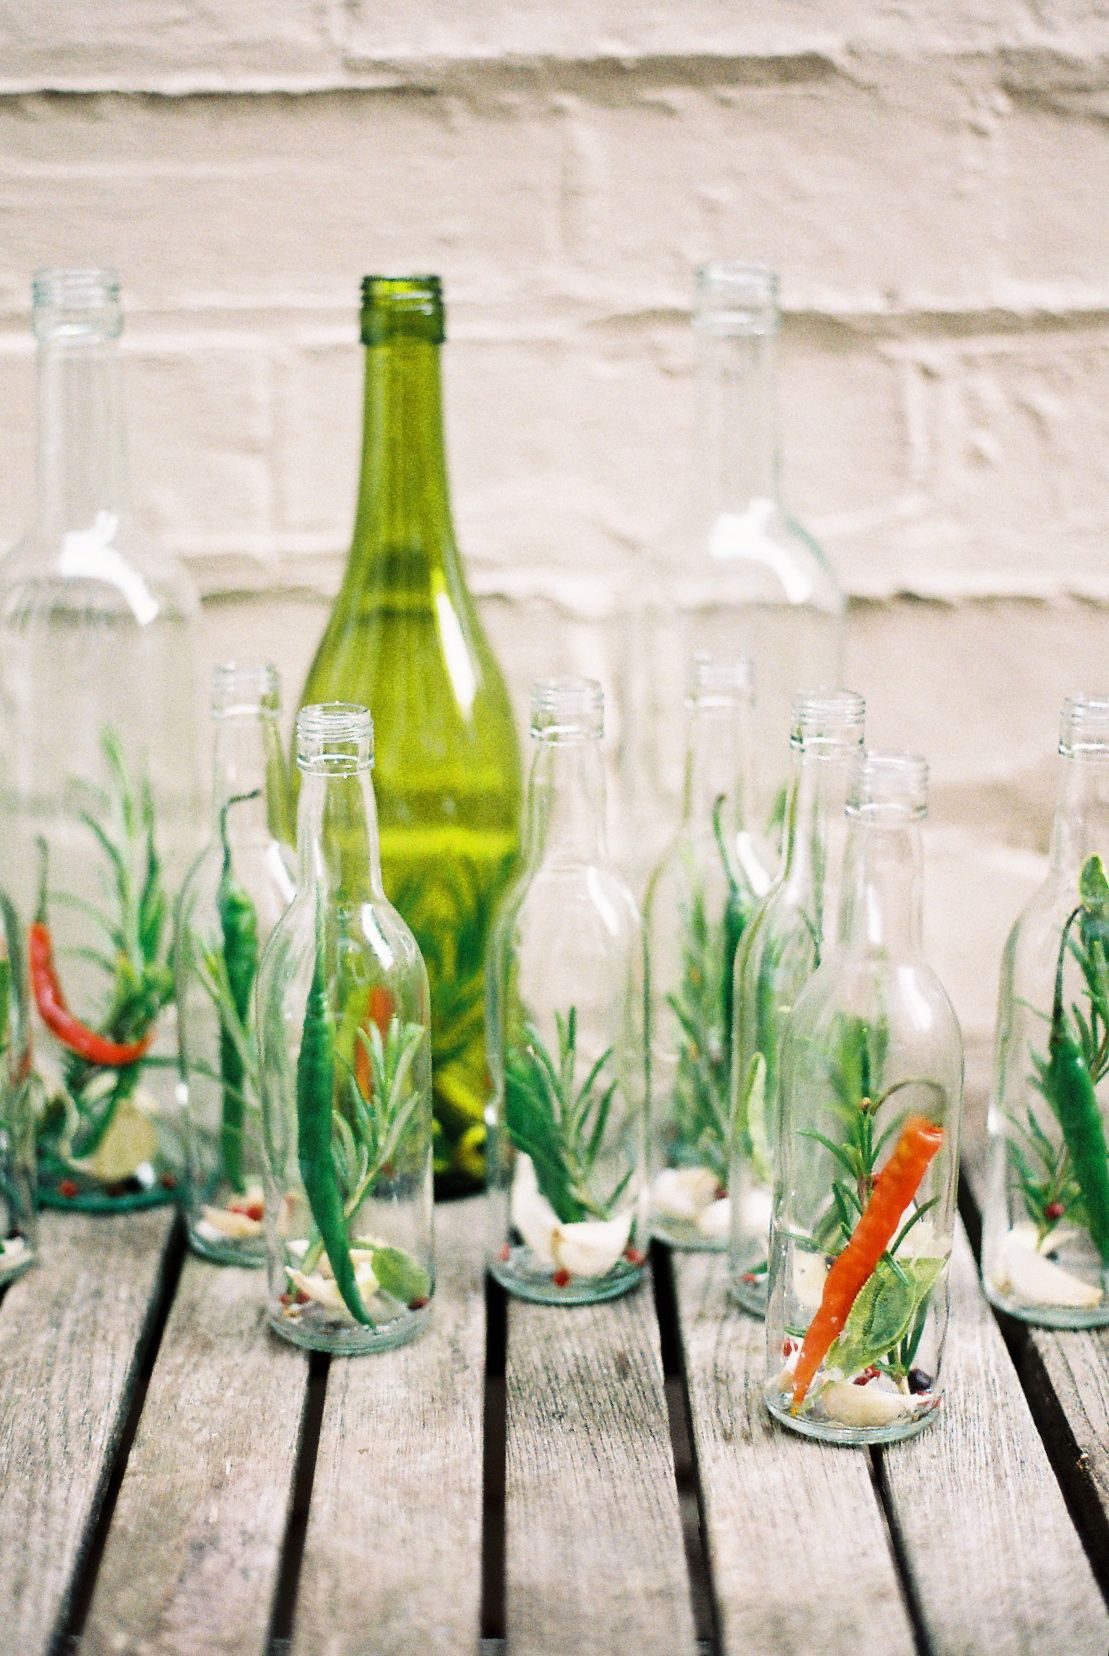 Make: Chilli, garlic and herb infused olive oil #oliveoils